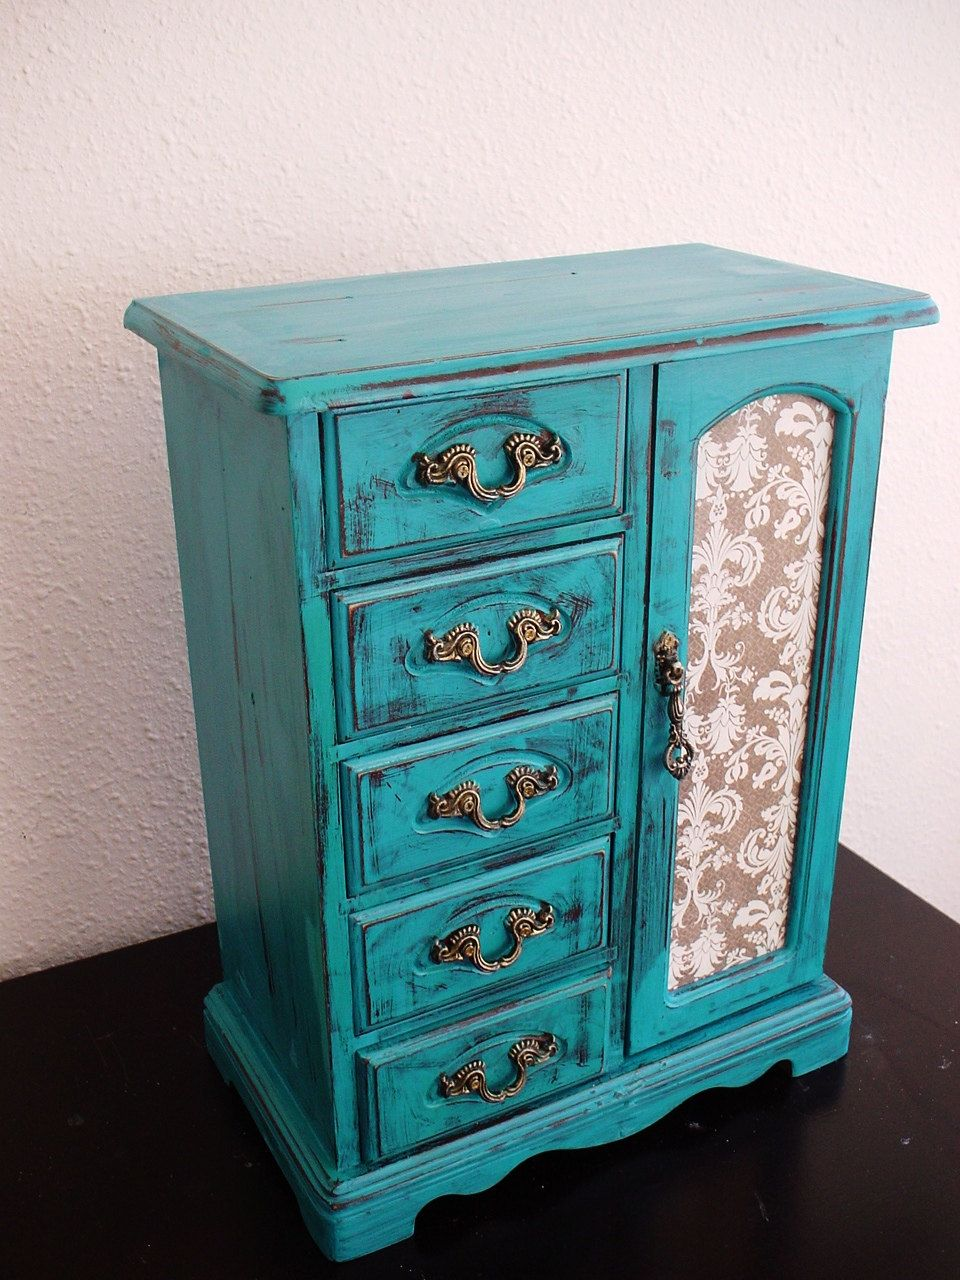 Beautiful Lake Blue Hand Painted Wooden Jewelry Box Etsy Painted Jewelry Boxes Wooden Jewelry Boxes Jewelry Box Makeover